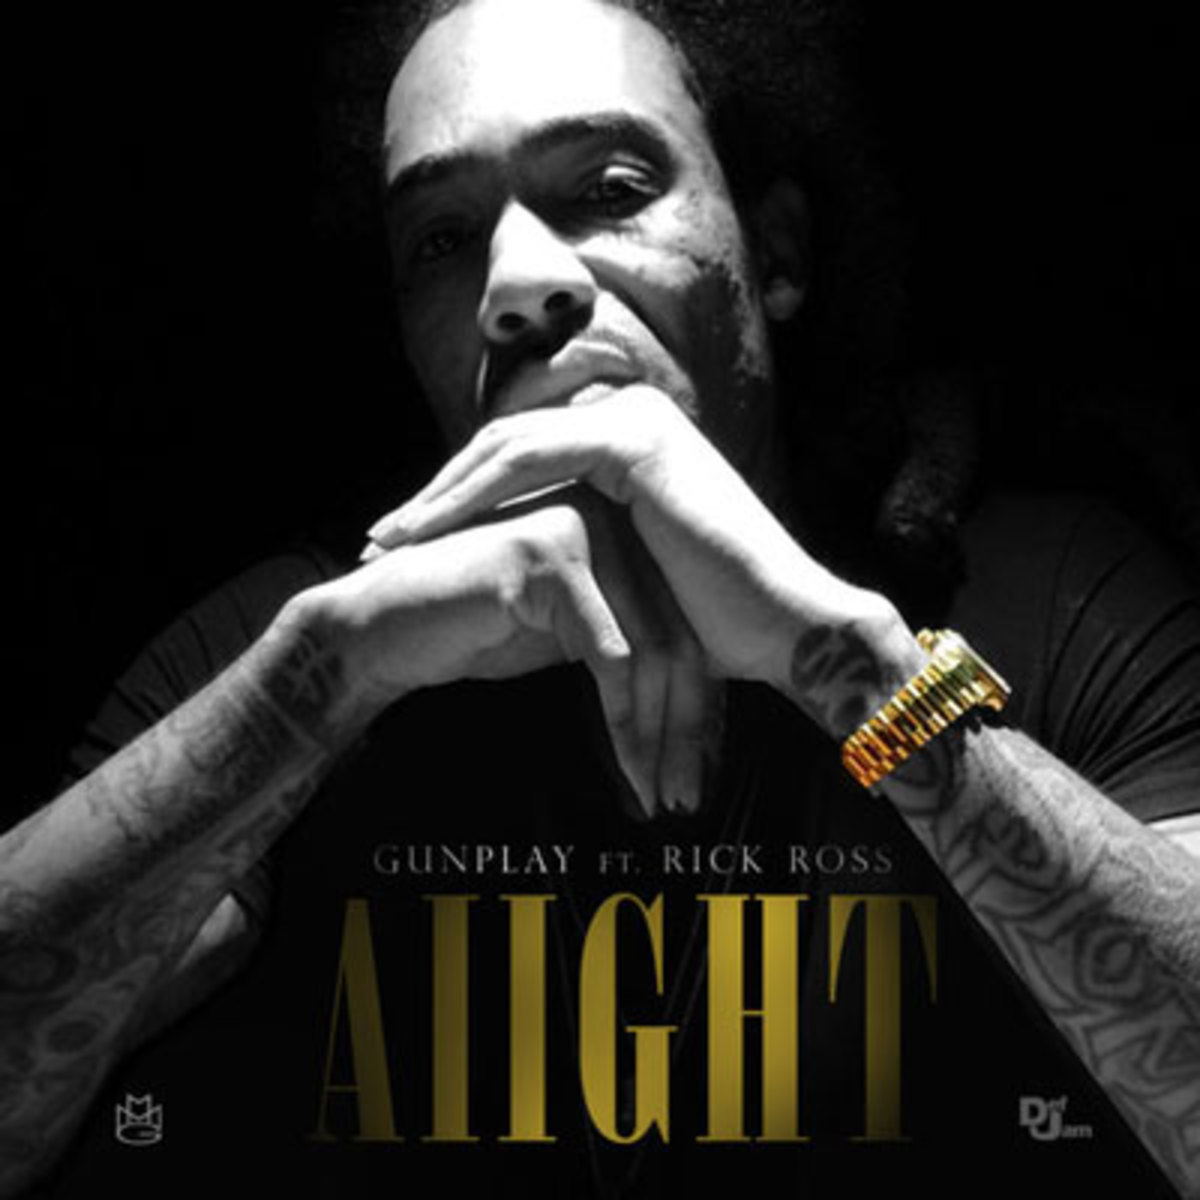 gunplay-aiight.jpg